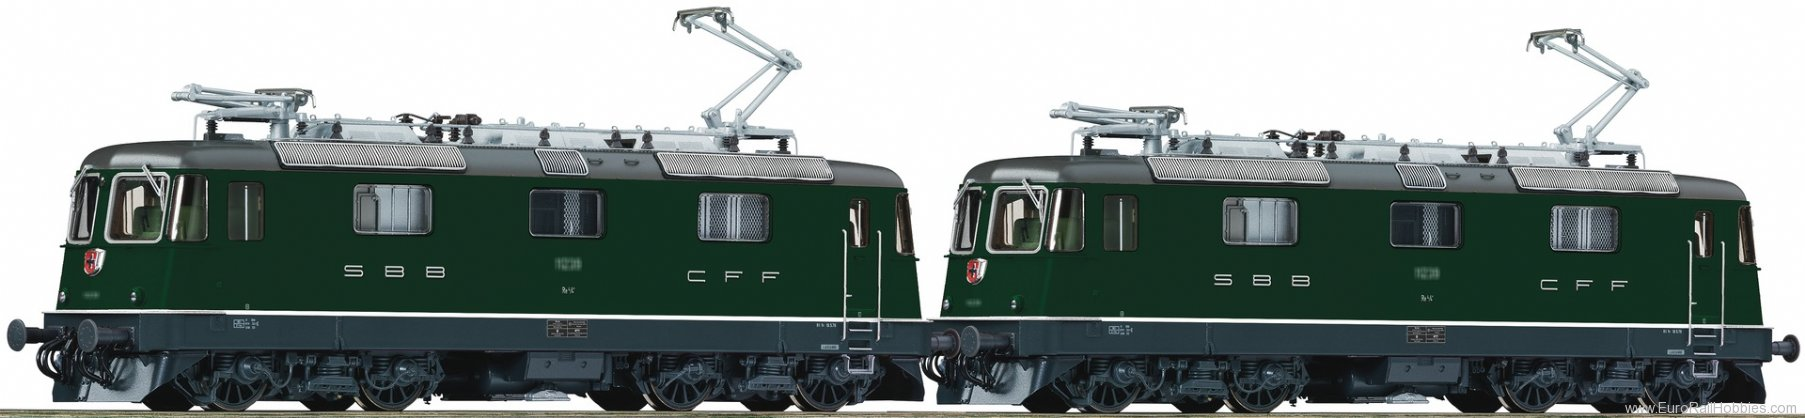 Roco 72419 Double traction electric locomotive Re 4/4, S